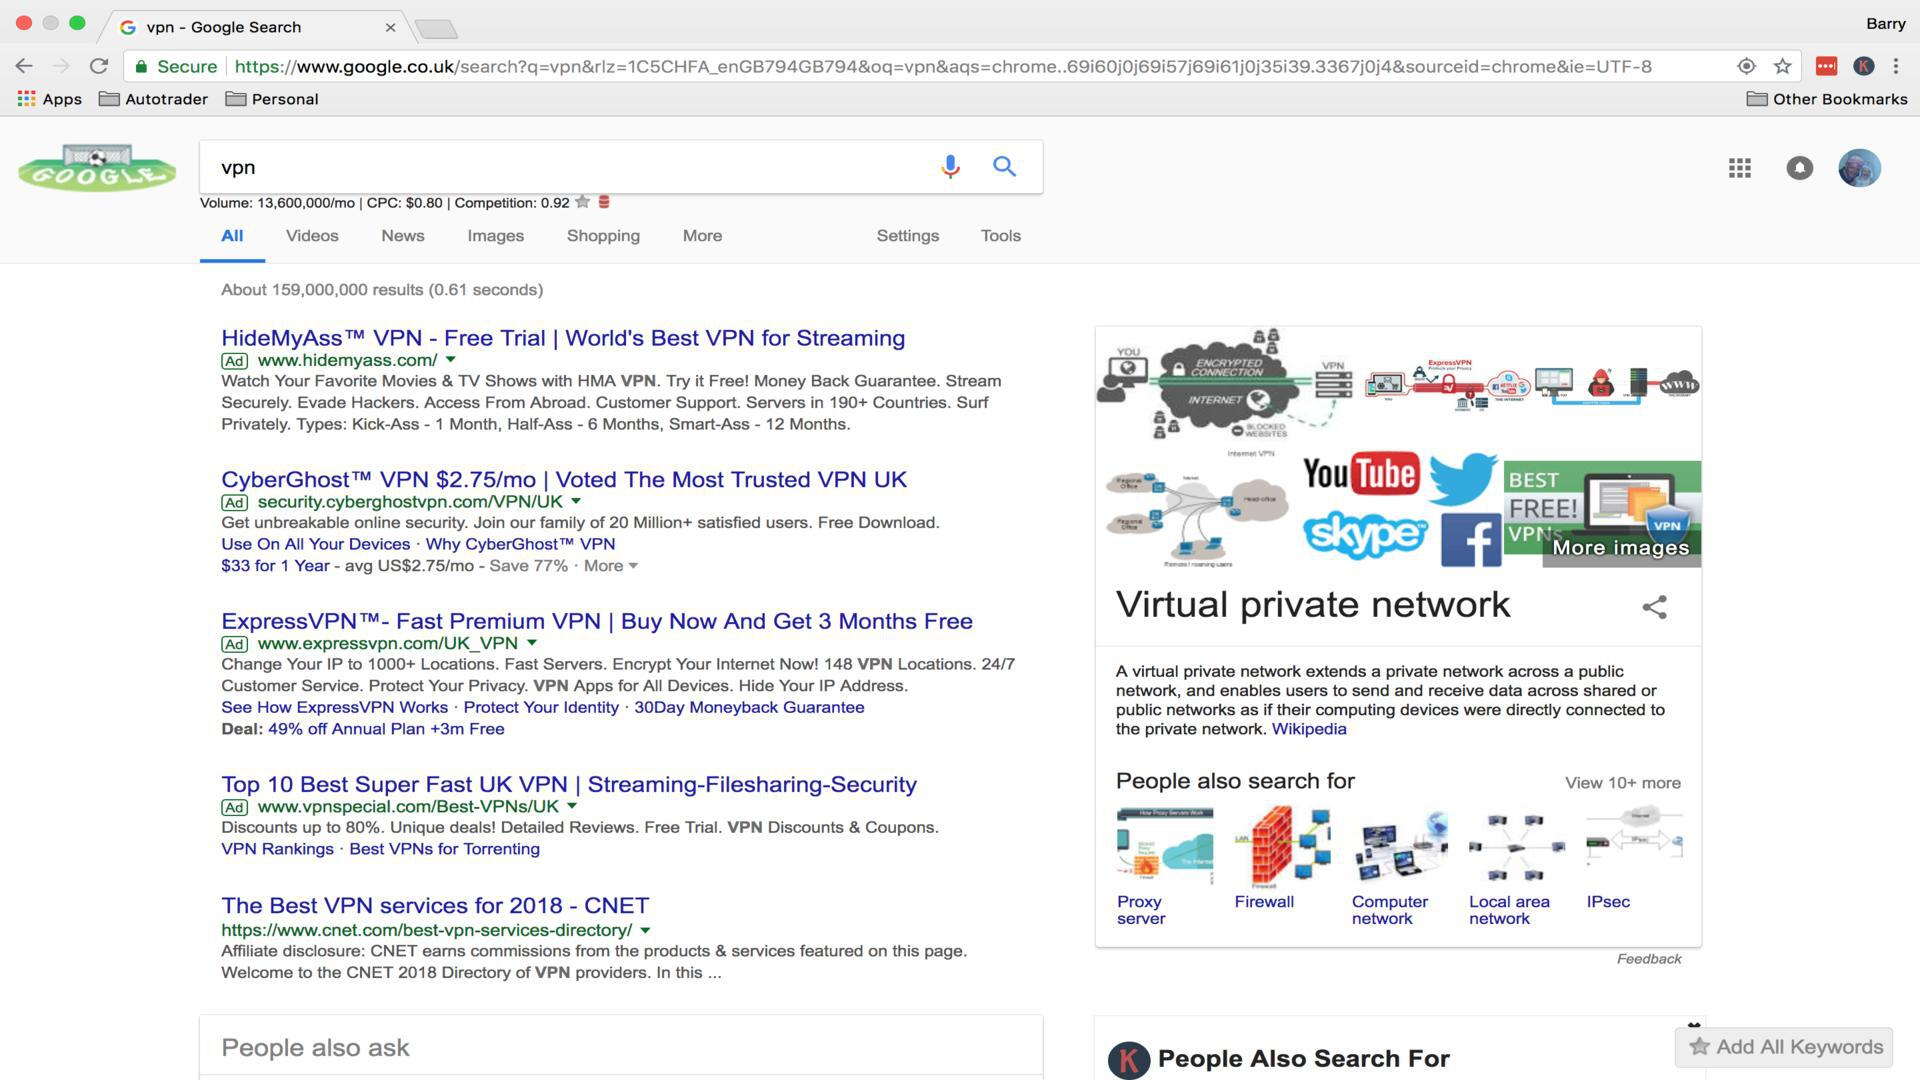 VPN Search Engine Results Pages